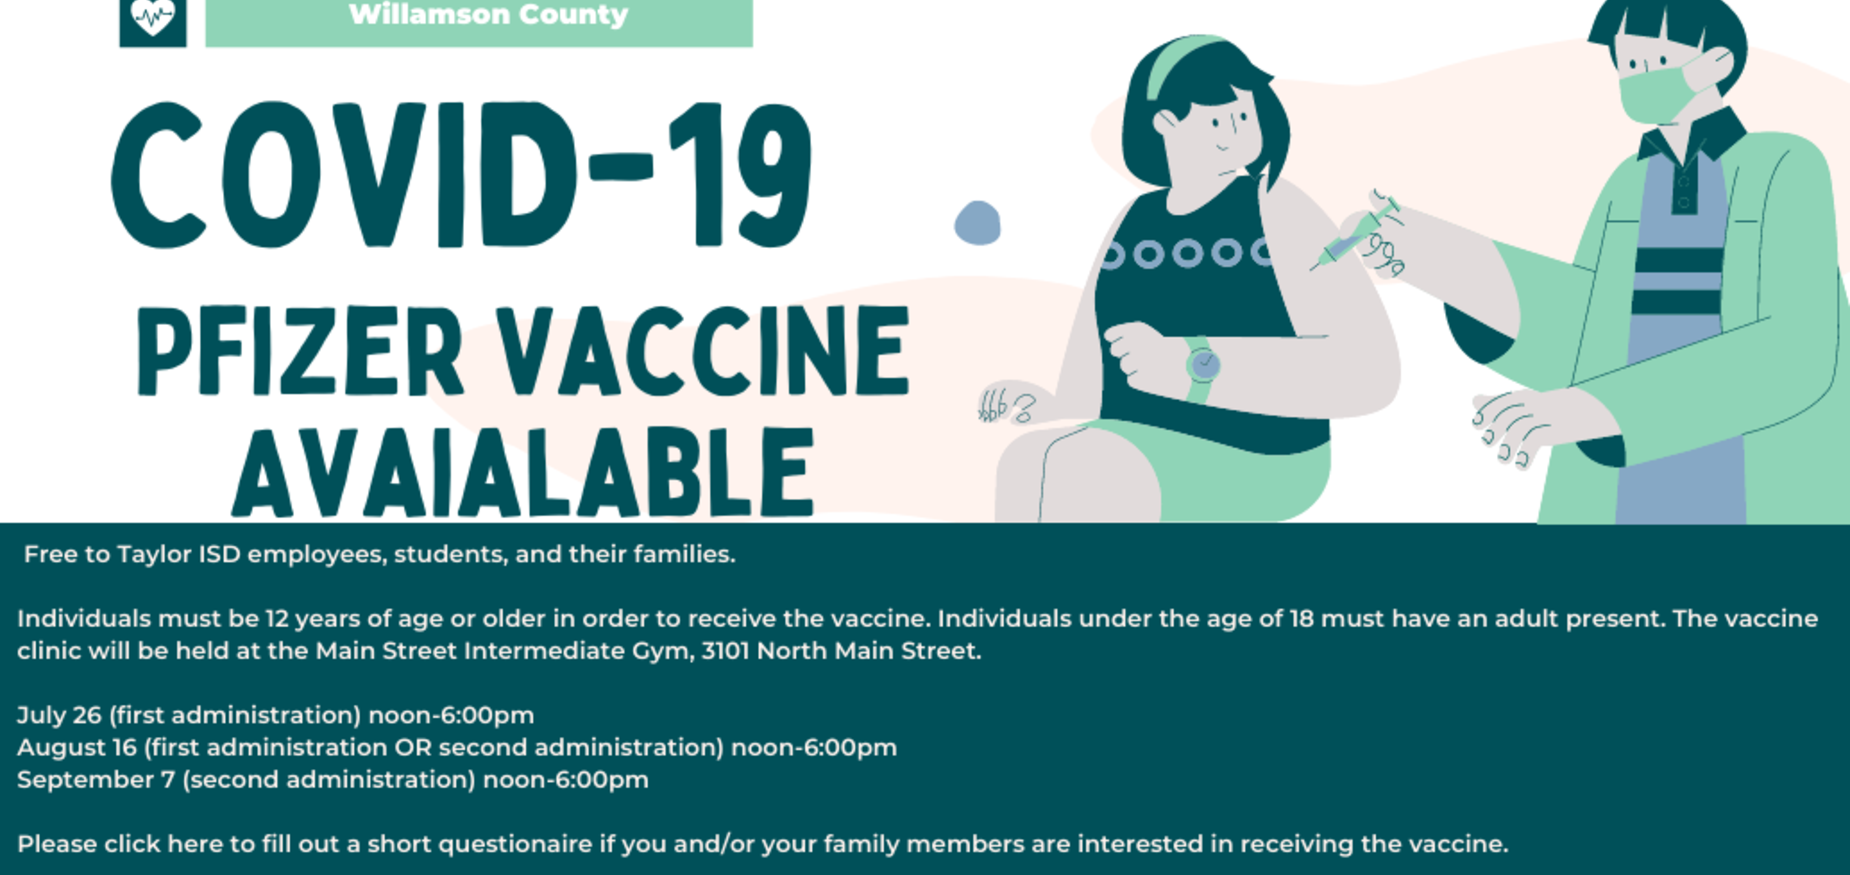 Williamson County will offer the Pfizer COVID vaccine for free to Taylor ISD employees, students, and their families.   Individuals must be 12 years of age or older in order to receive the vaccine.  Individuals under the age of 18 must have an adult present.  The vaccine clinic will be held at the Main Street Intermediate Gym, 3101 North Main Street.   July 26 (first administration) noon-6:00pm August 16 (first administration OR second administration) noon-6:00pm September 7 (second administration)  noon-6:00pm